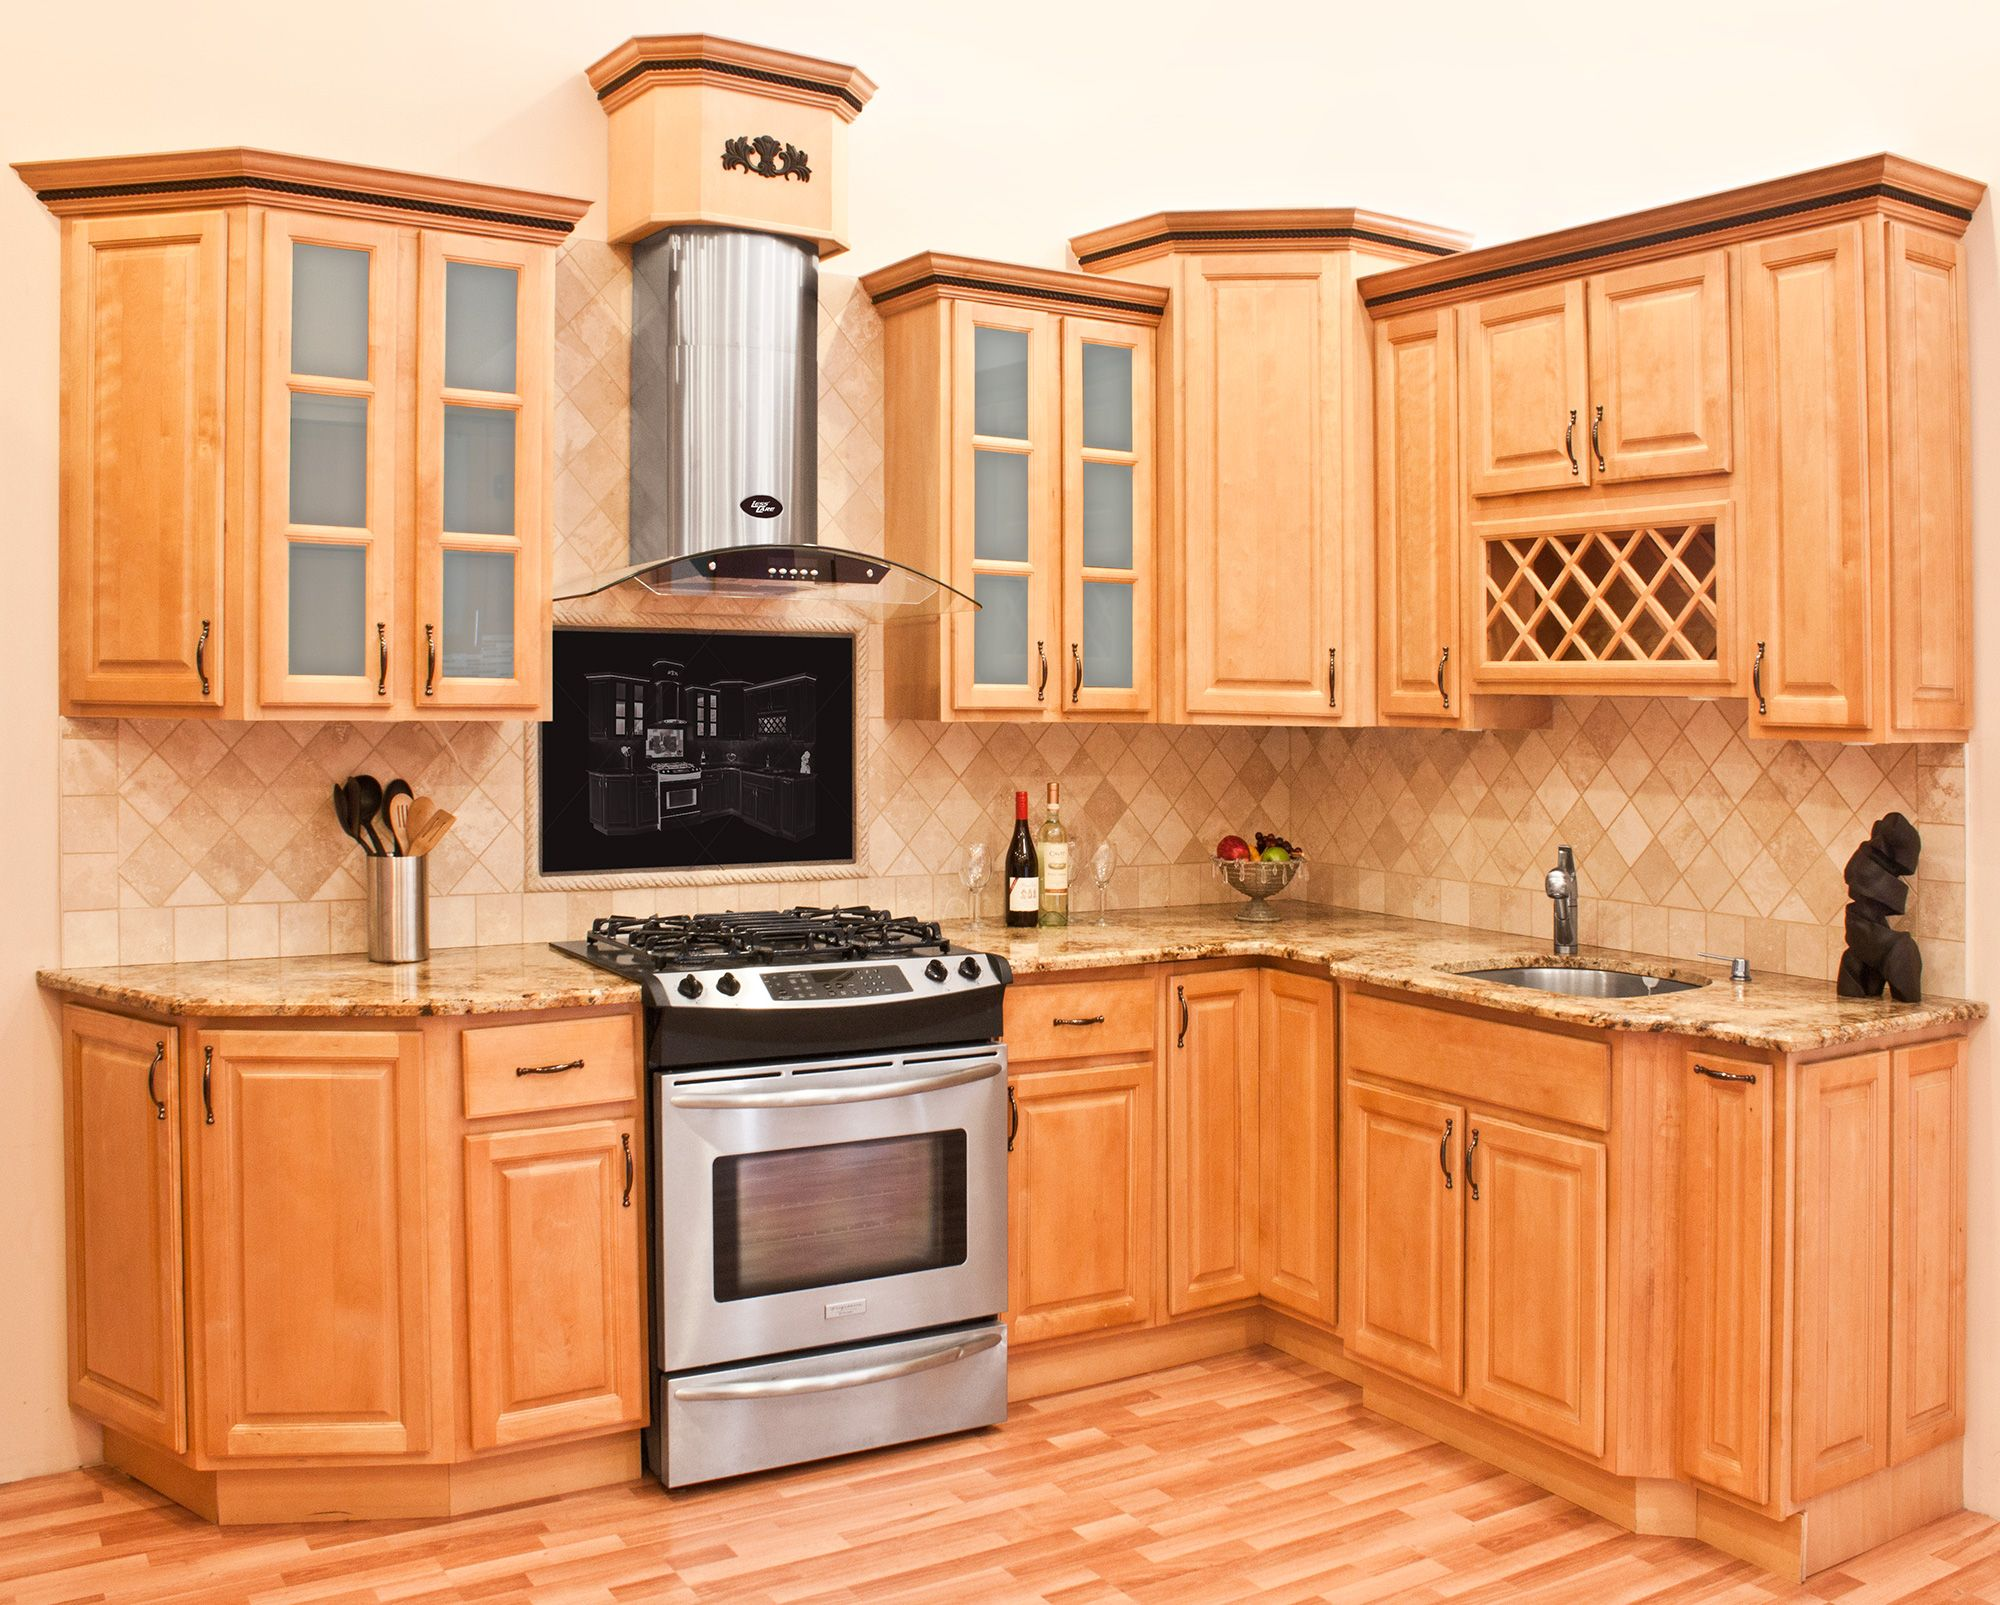 Ideas About Maple Kitchen Cabinets In Home Interior Design